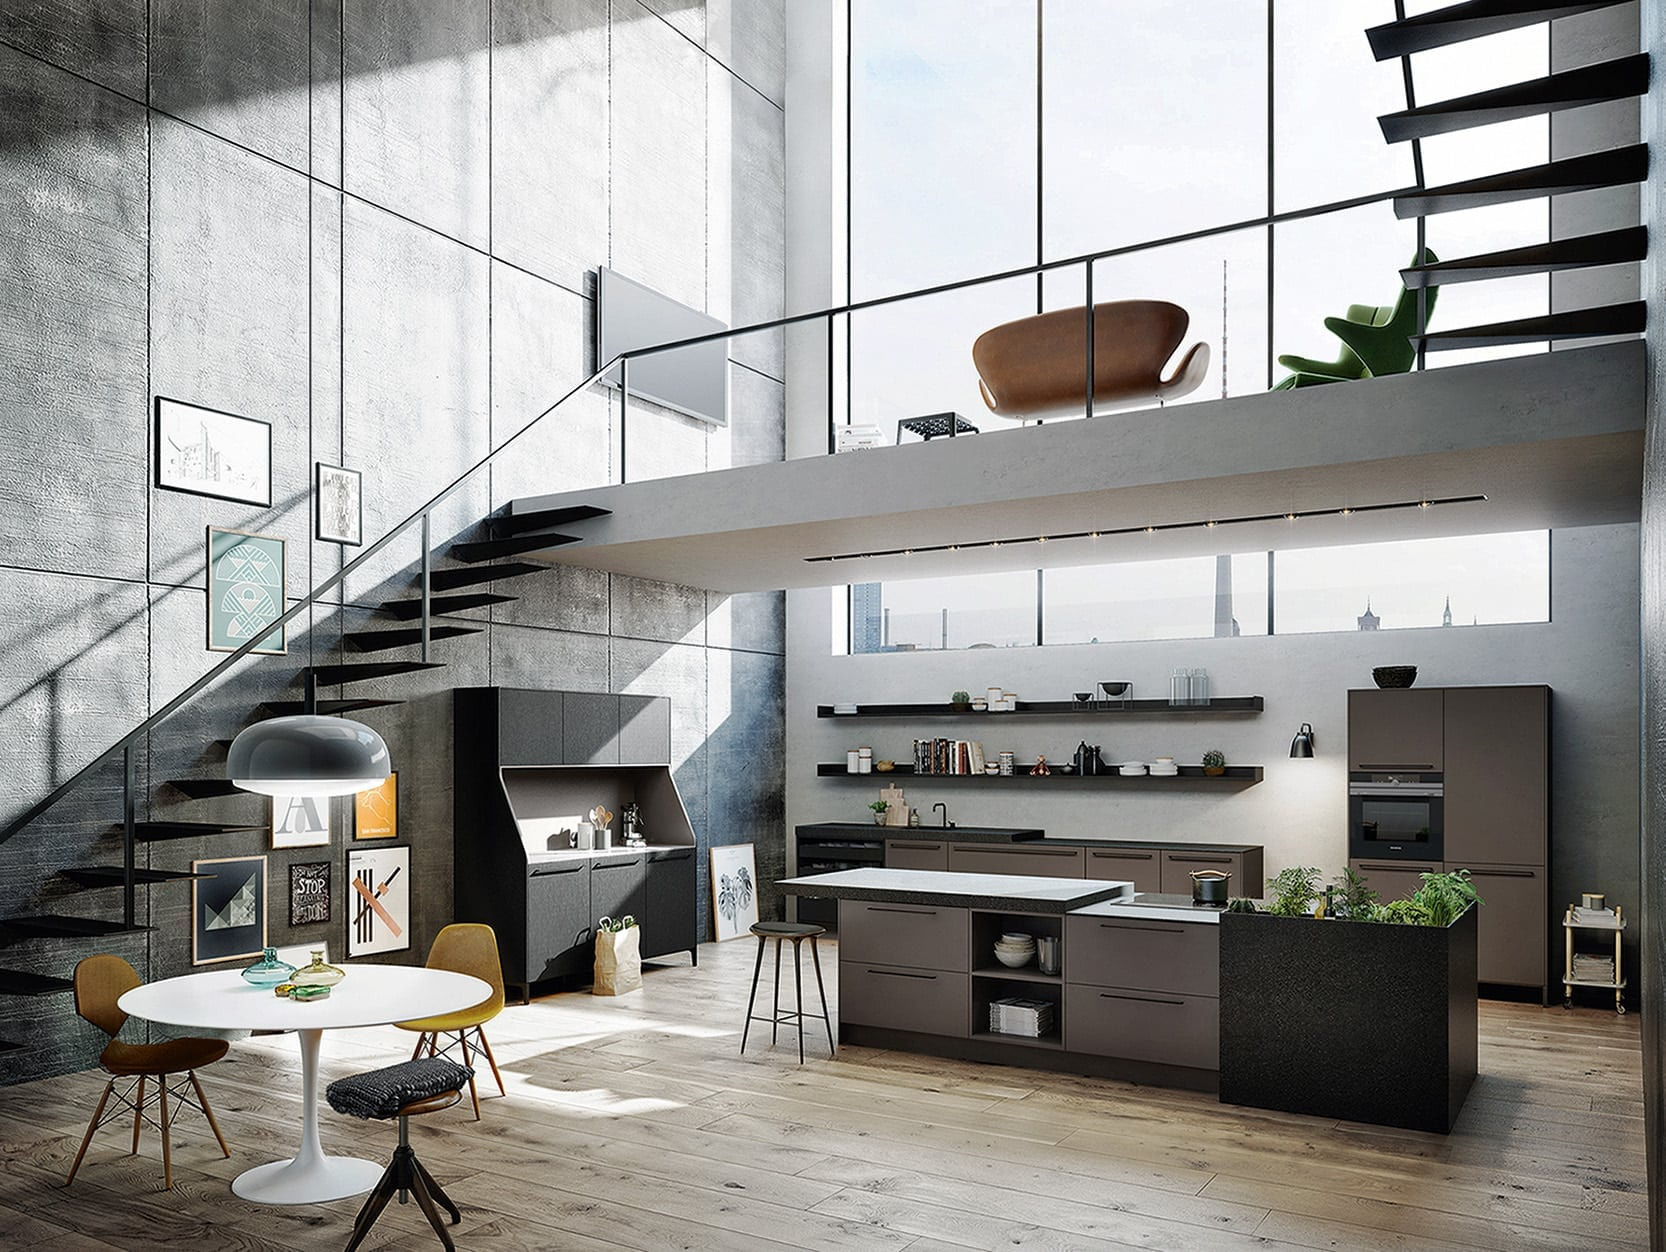 An urban kitchen dining living space with stairs and large windows